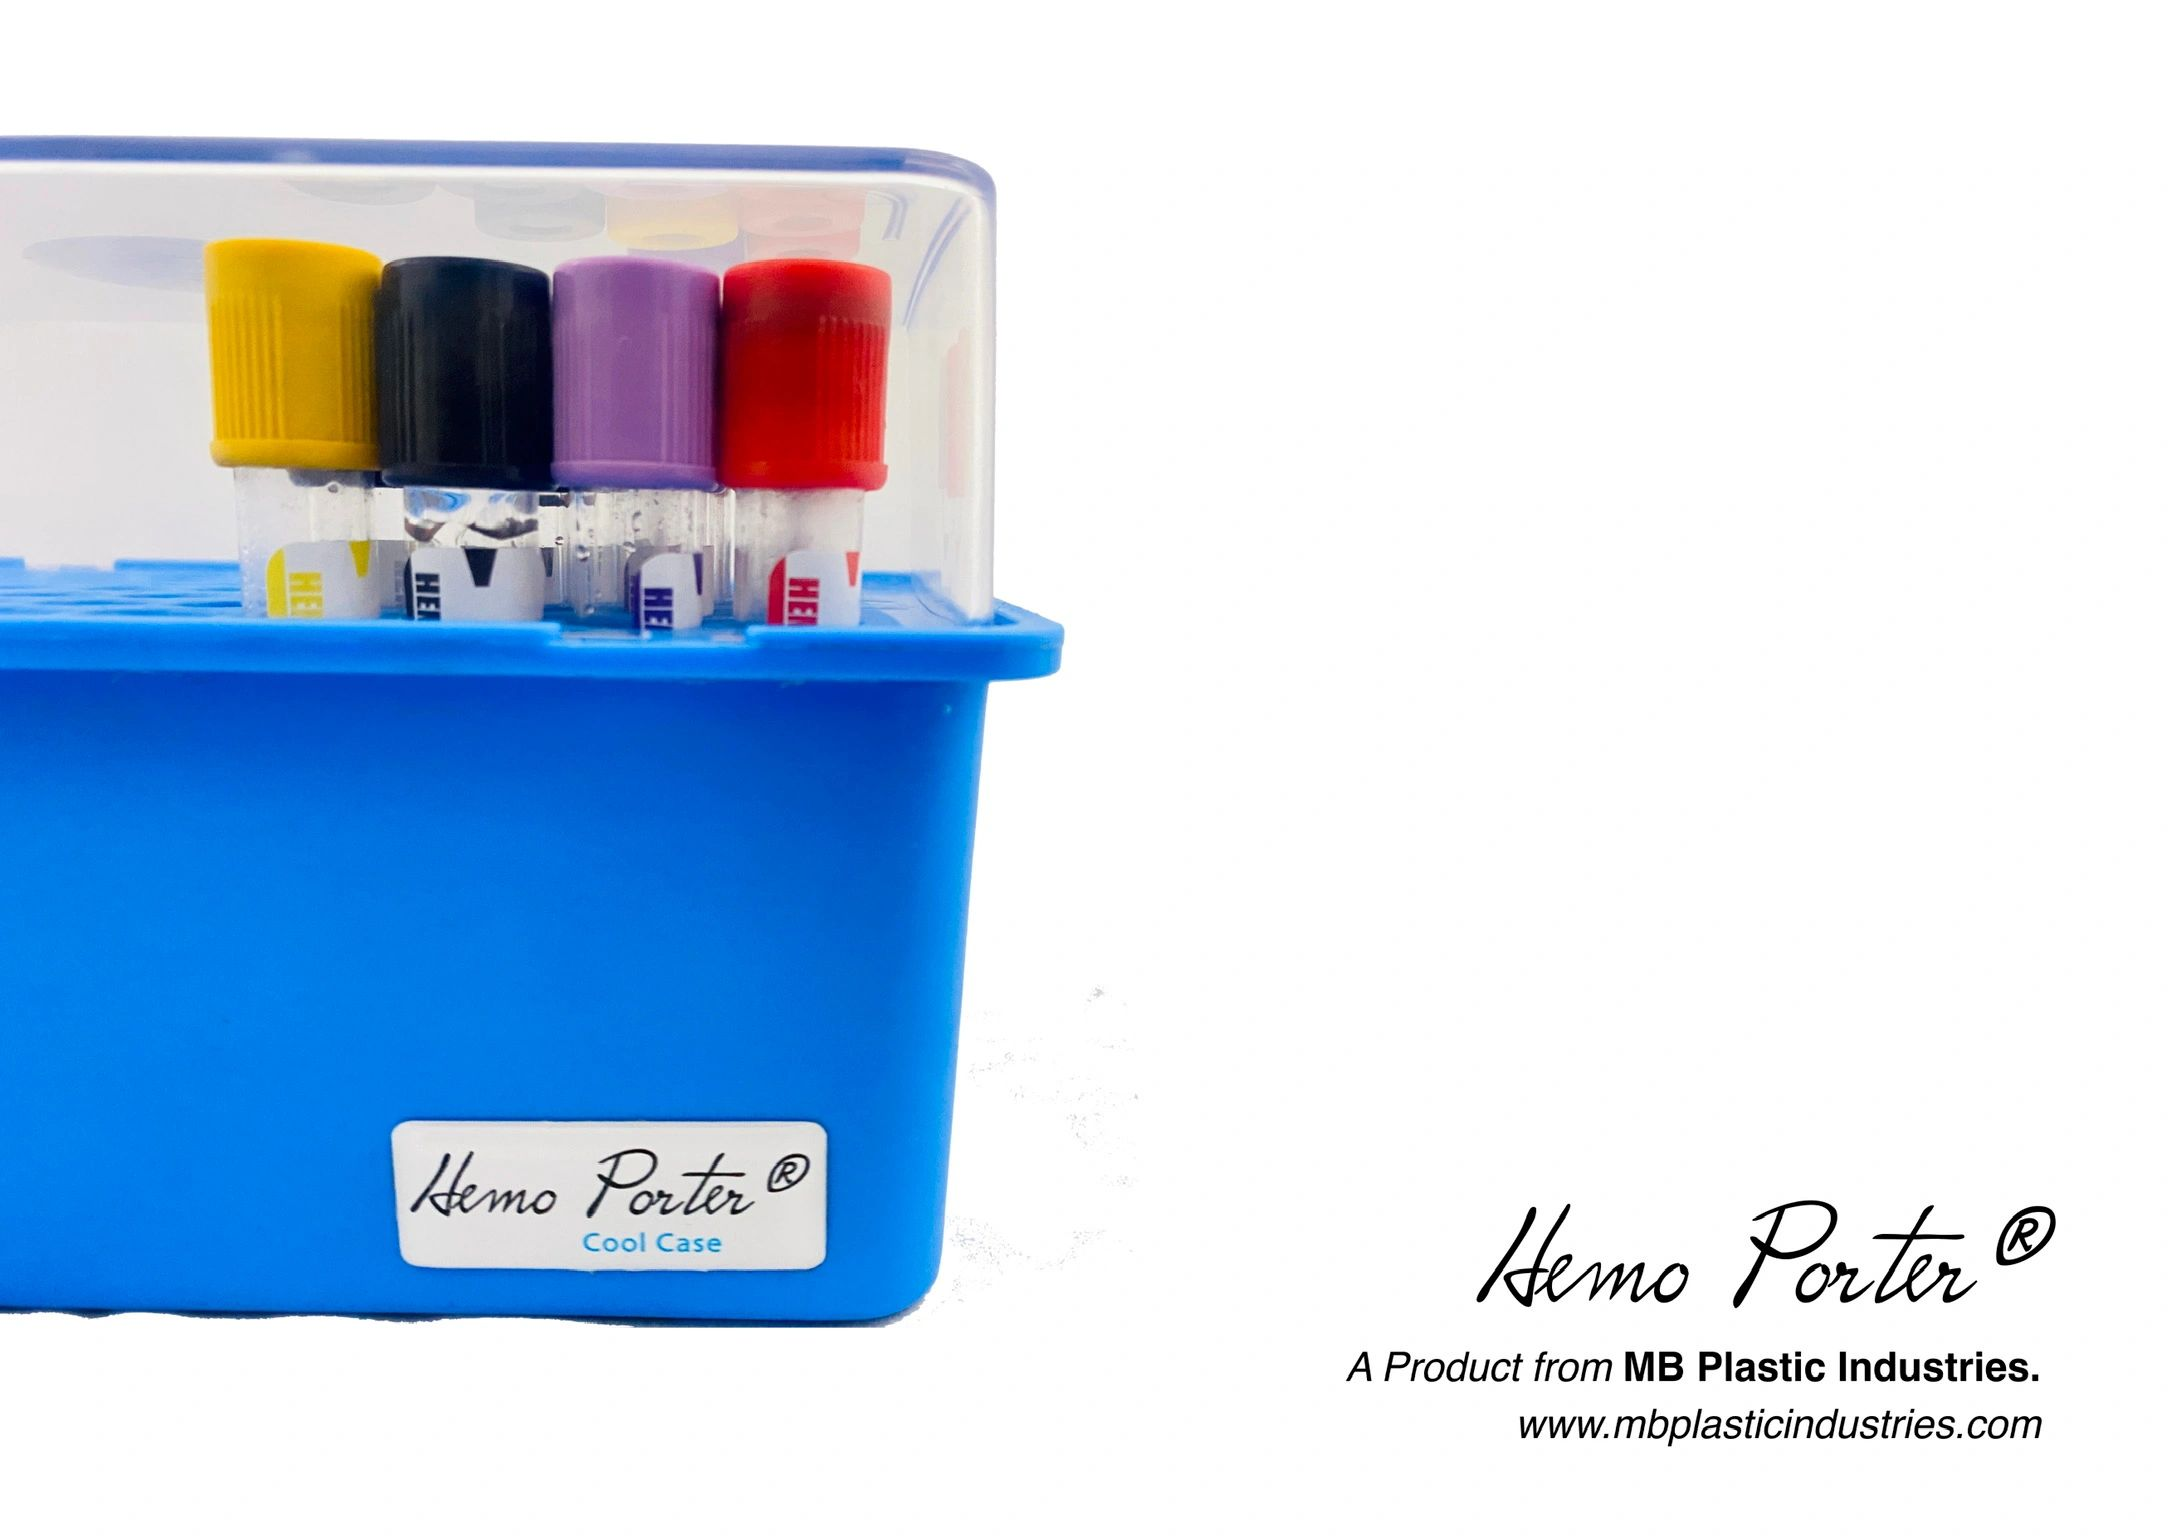 Hemo Porter. Cool Case to transport Blood collection tubes. MB Plastic Industries